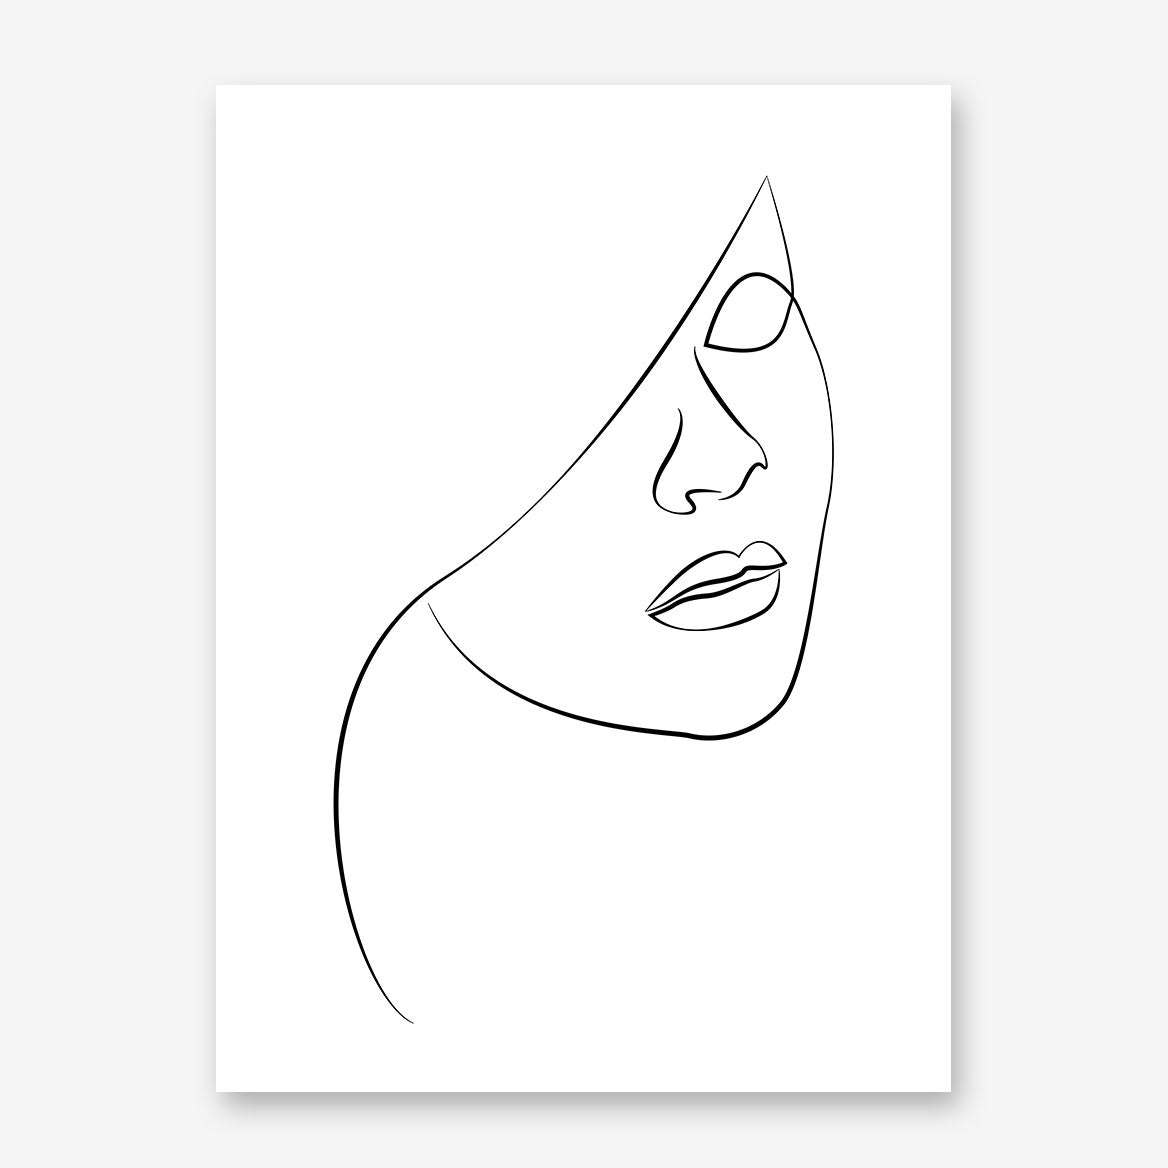 Beautiful line art poster print with a woman's portrait.